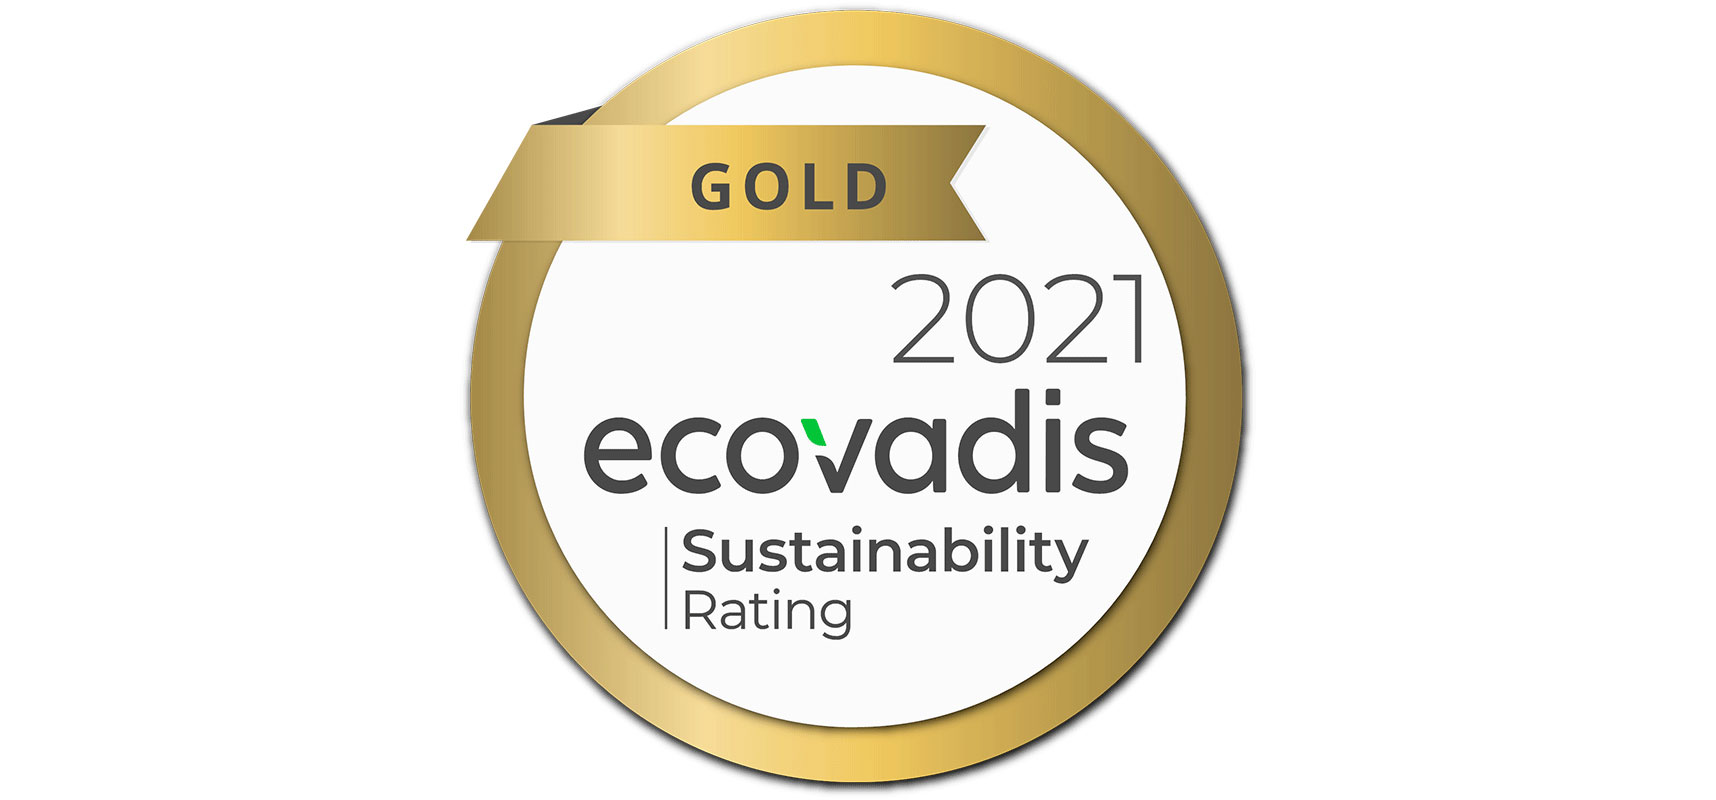 Birla Carbon recognized with the fifth consecutive Gold rating by EcoVadis for sustainability practices